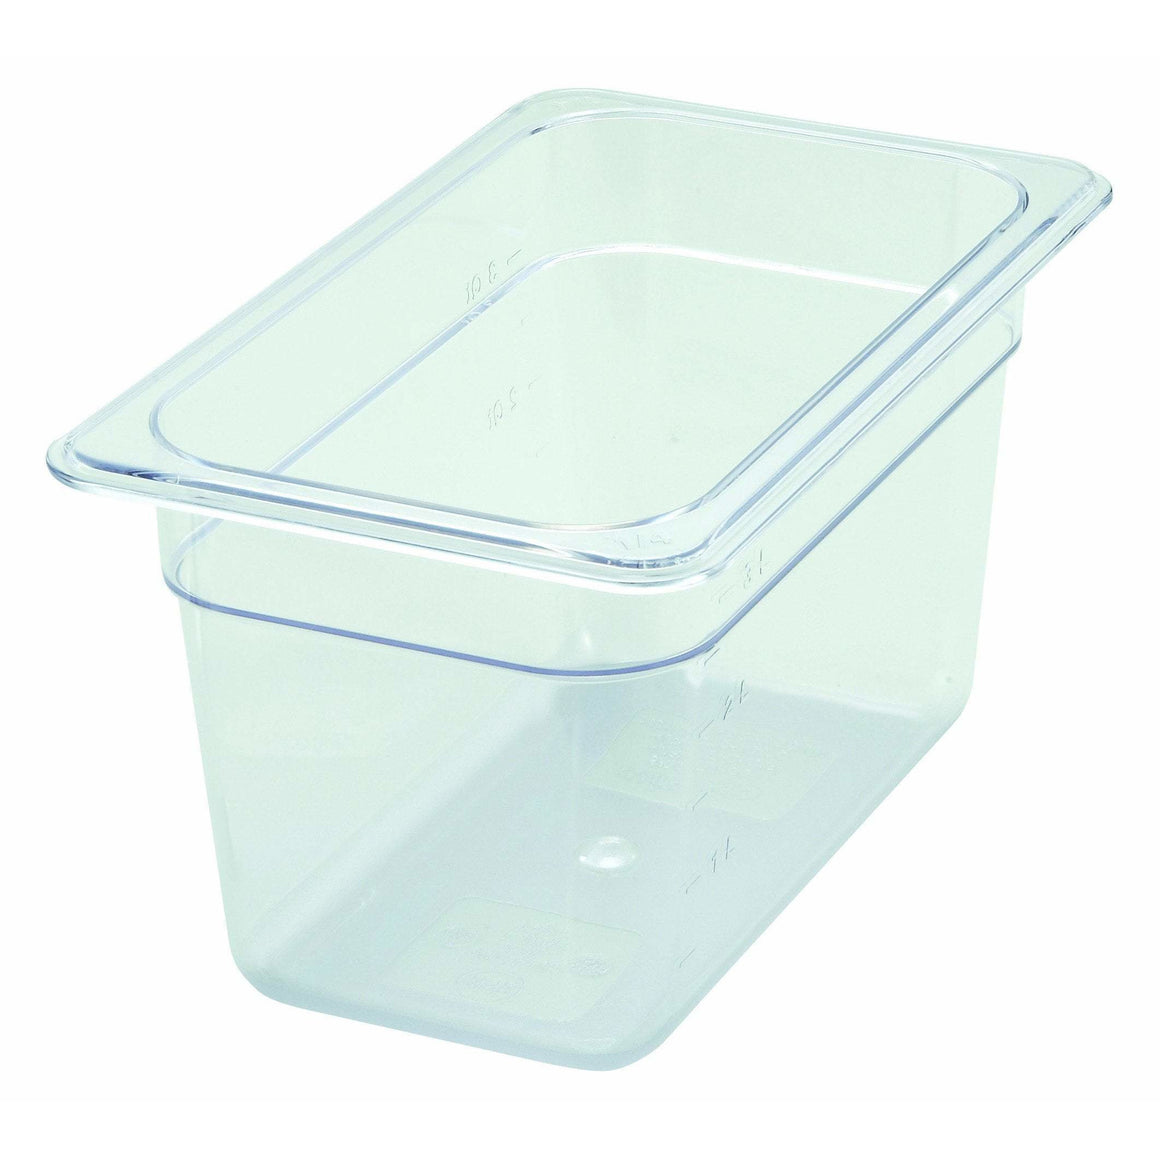 "Winco - SP7406 - PC Food Pan, 1/4 Size, 6"" - Food Storage"